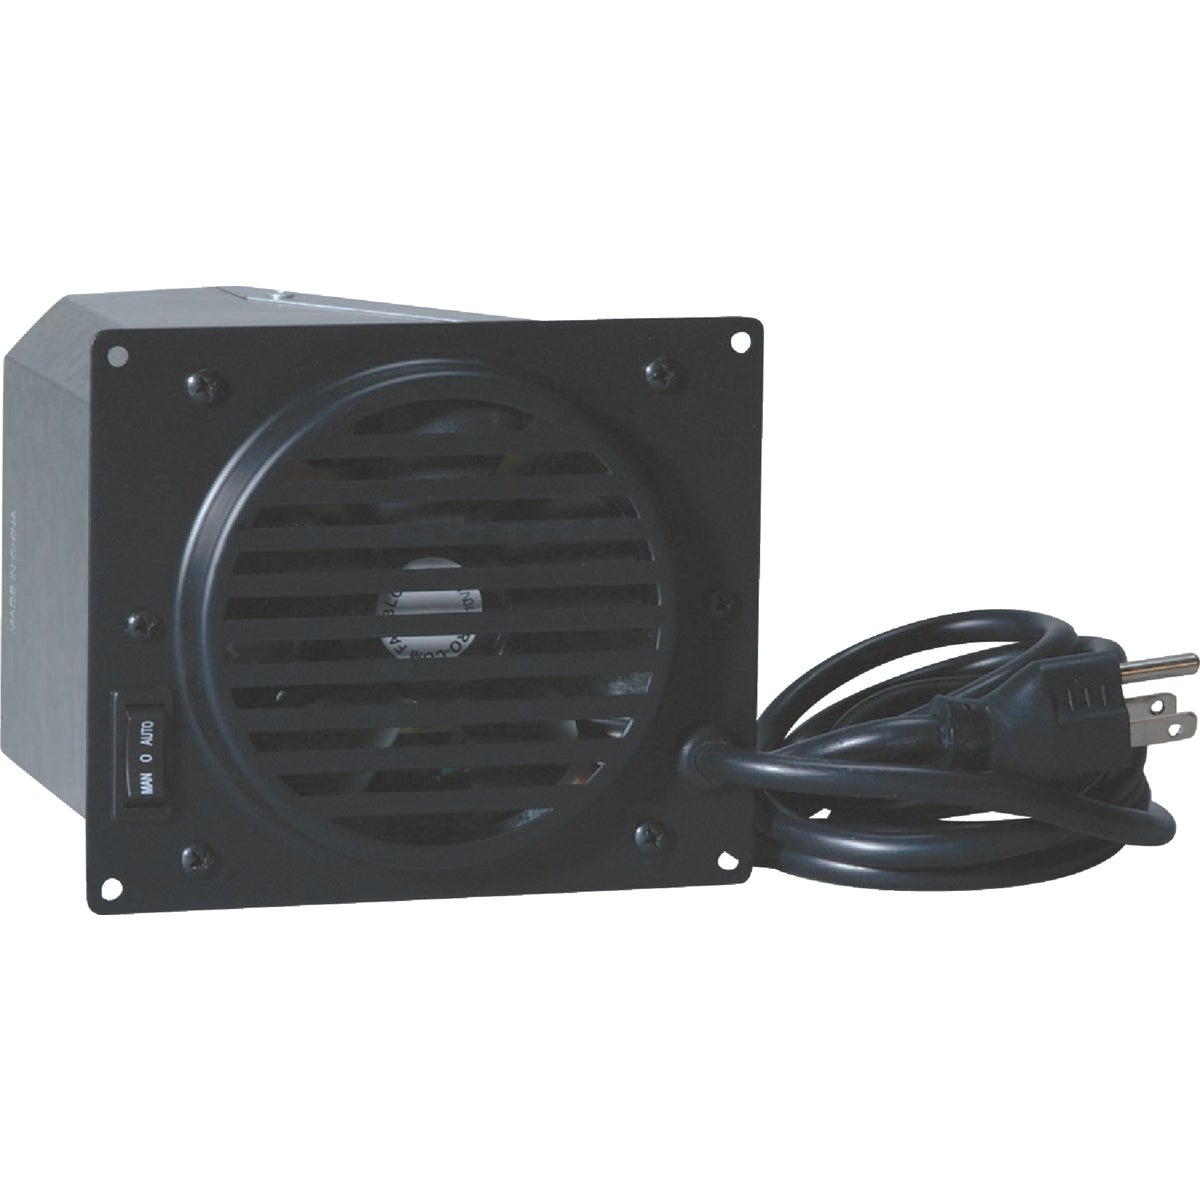 15K &UP WALL HTRS BLOWER - 20-6027 by World Marketing